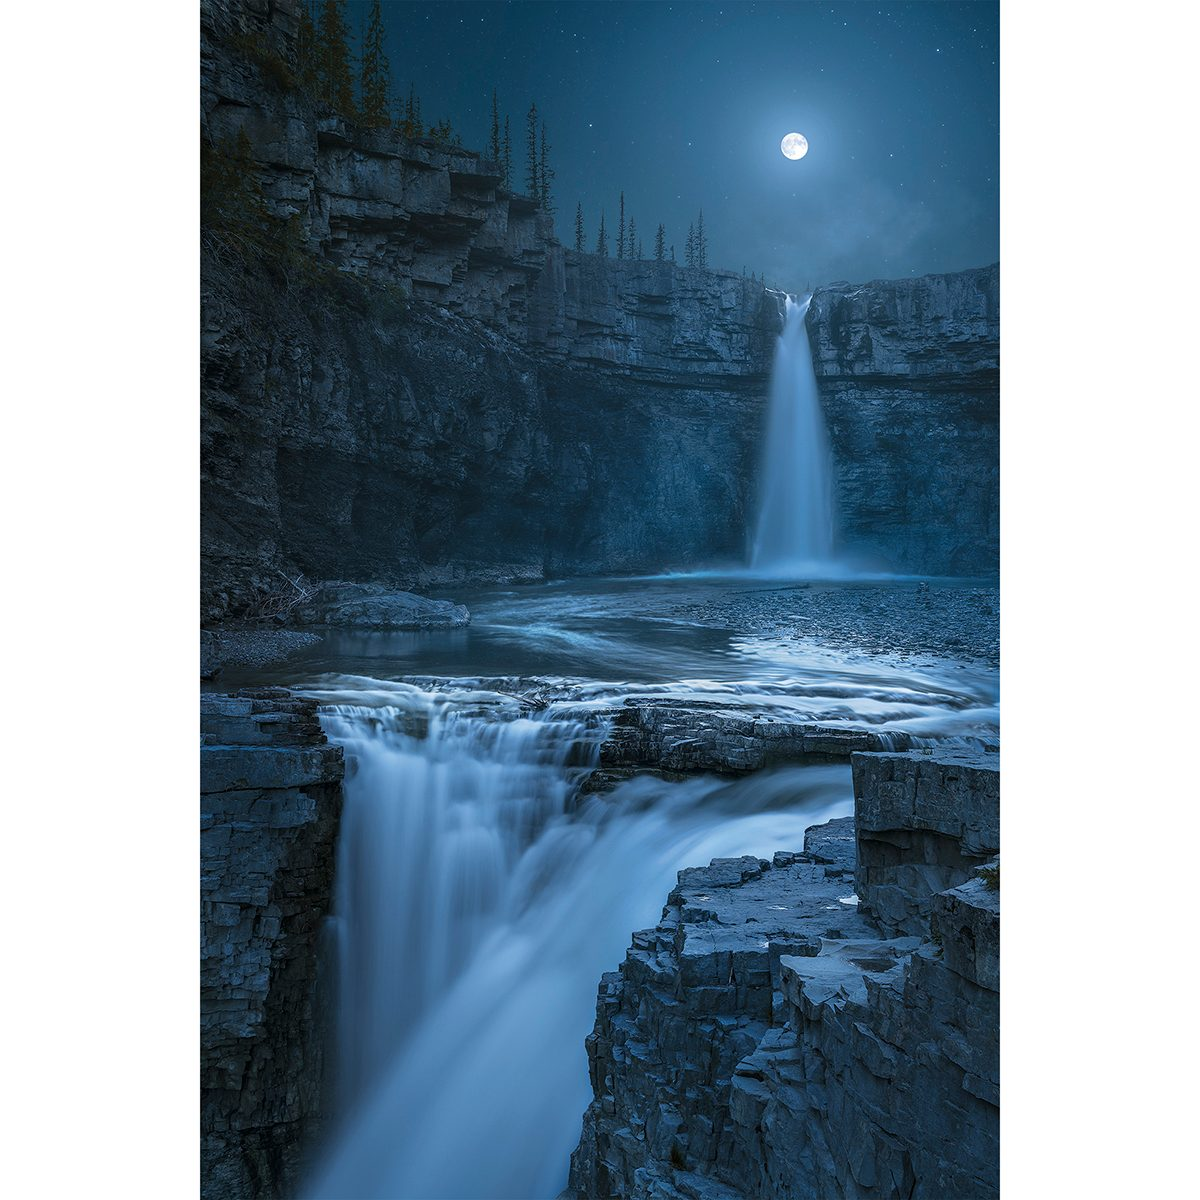 Share Your Canada photo contest - moonlight waterfall